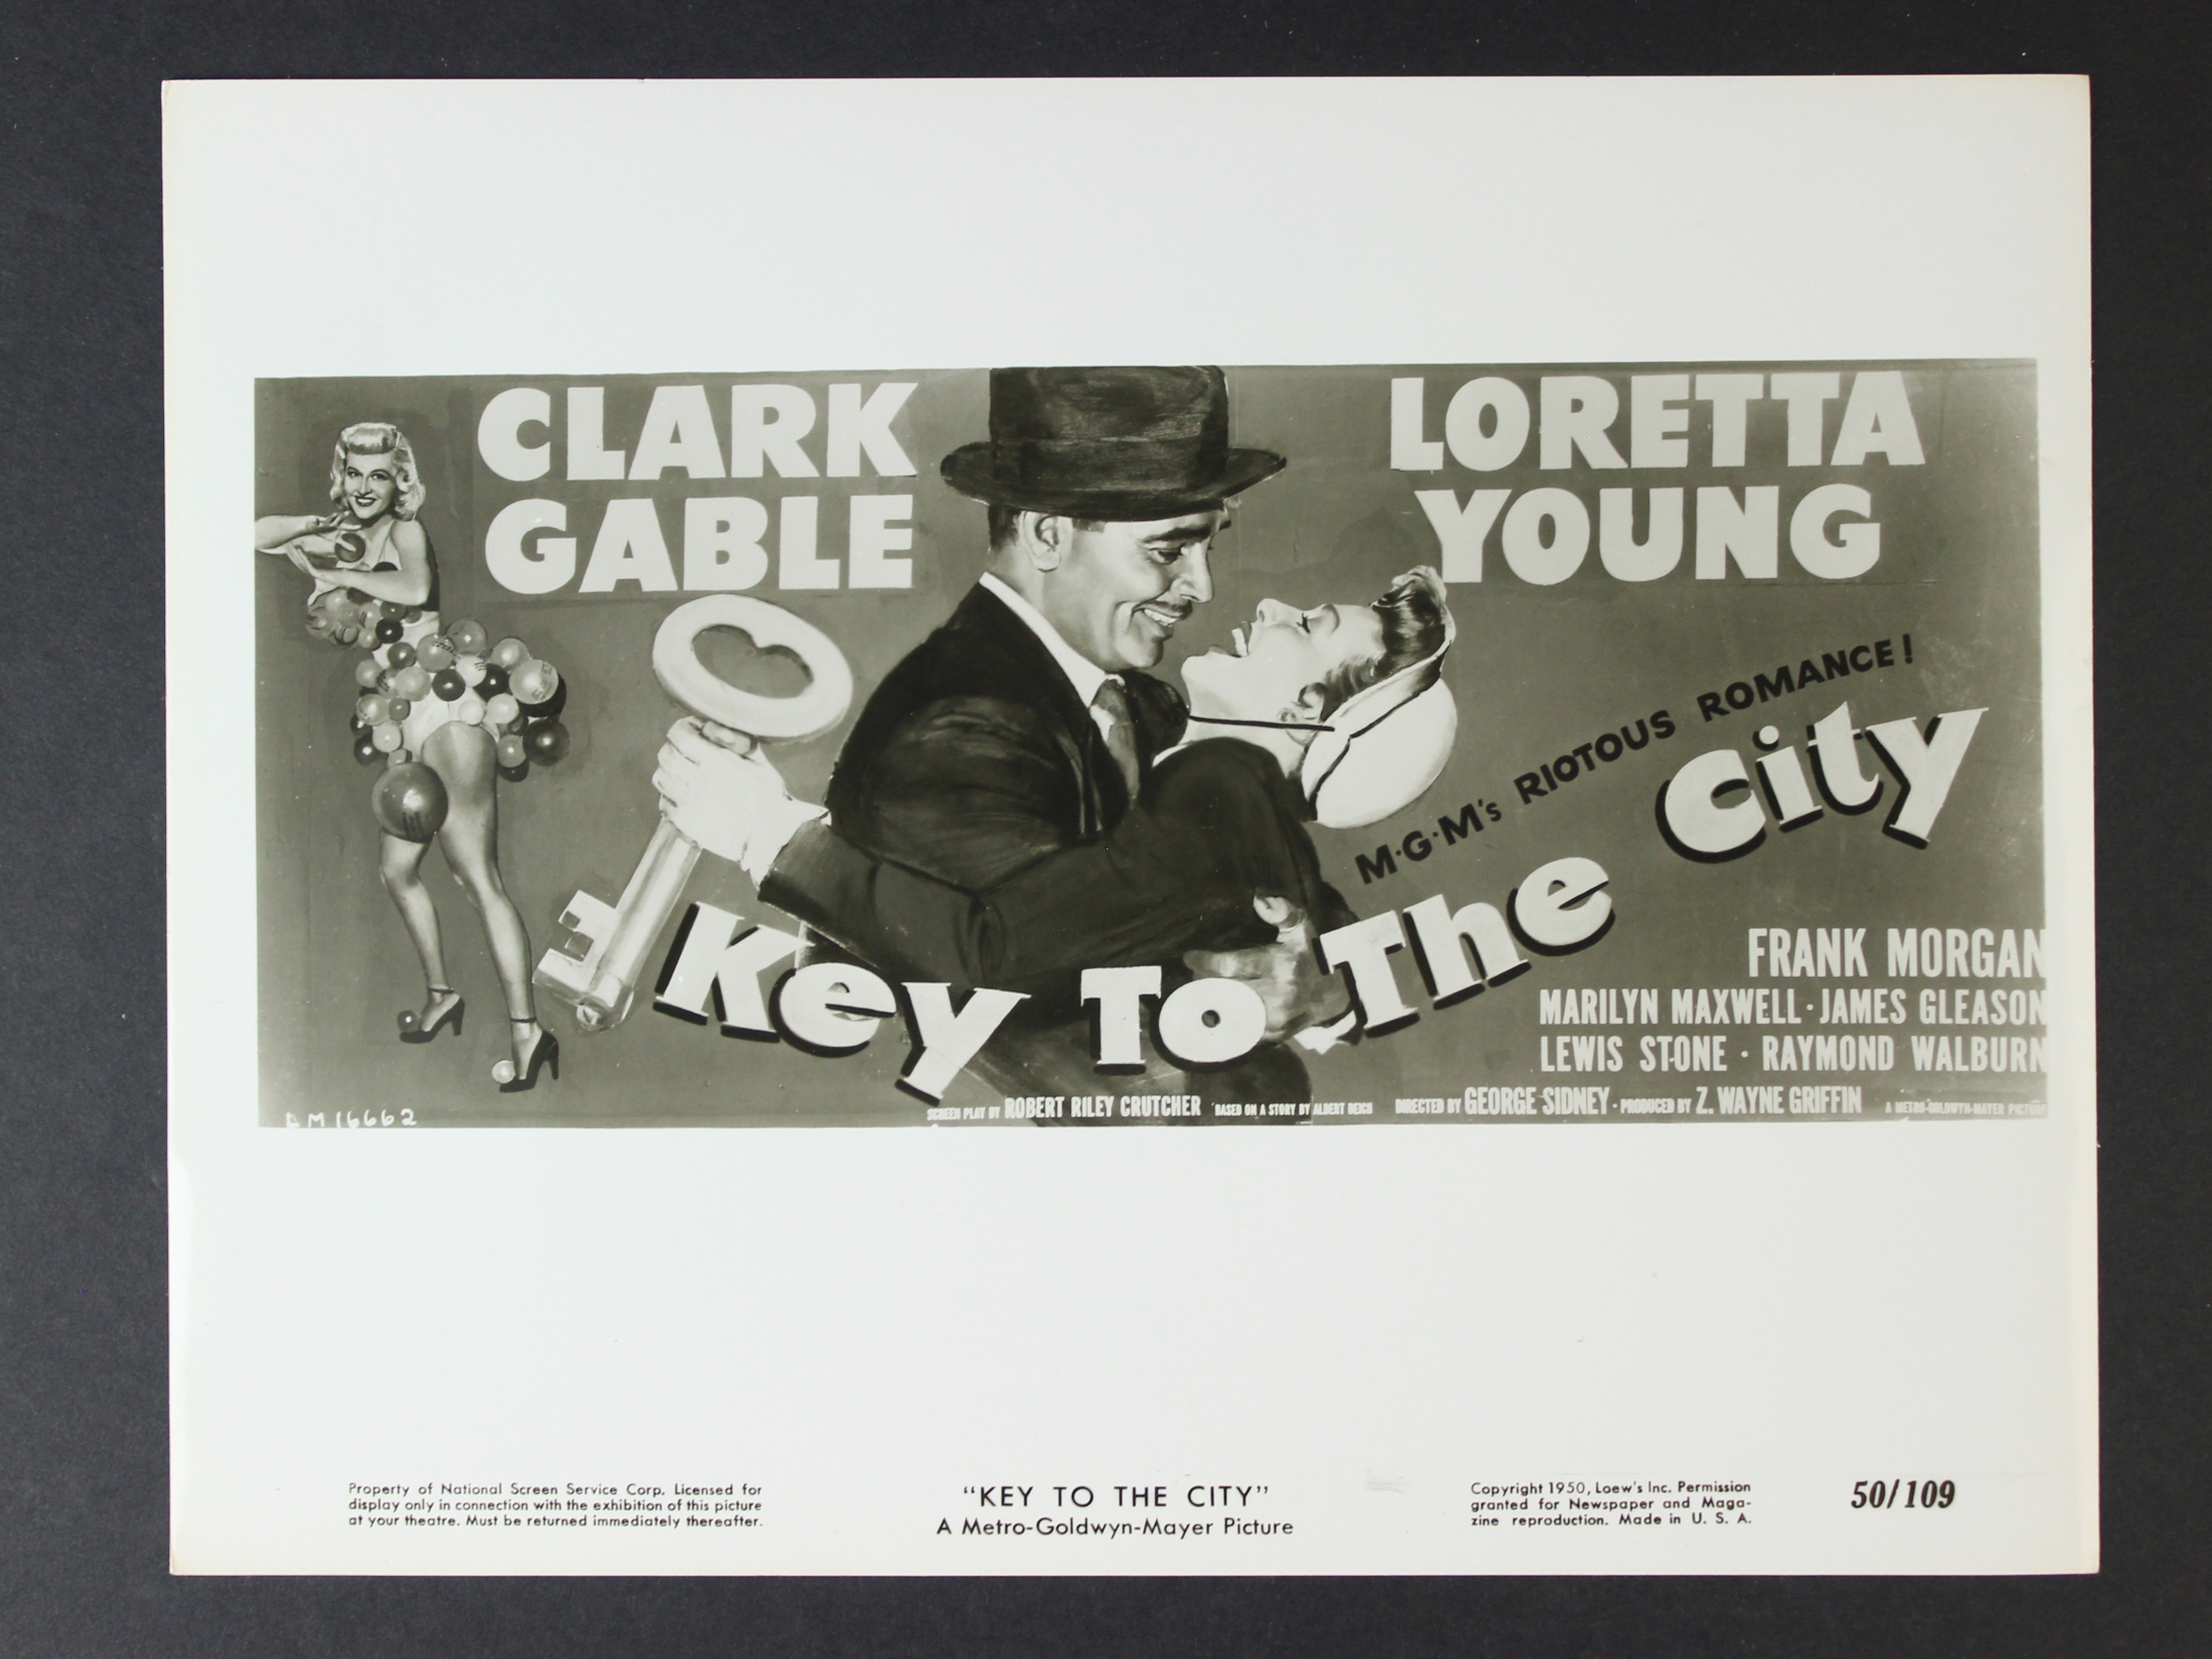 Clark Gable, Marilyn Maxwell, and Loretta Young in Key to the City (1950)